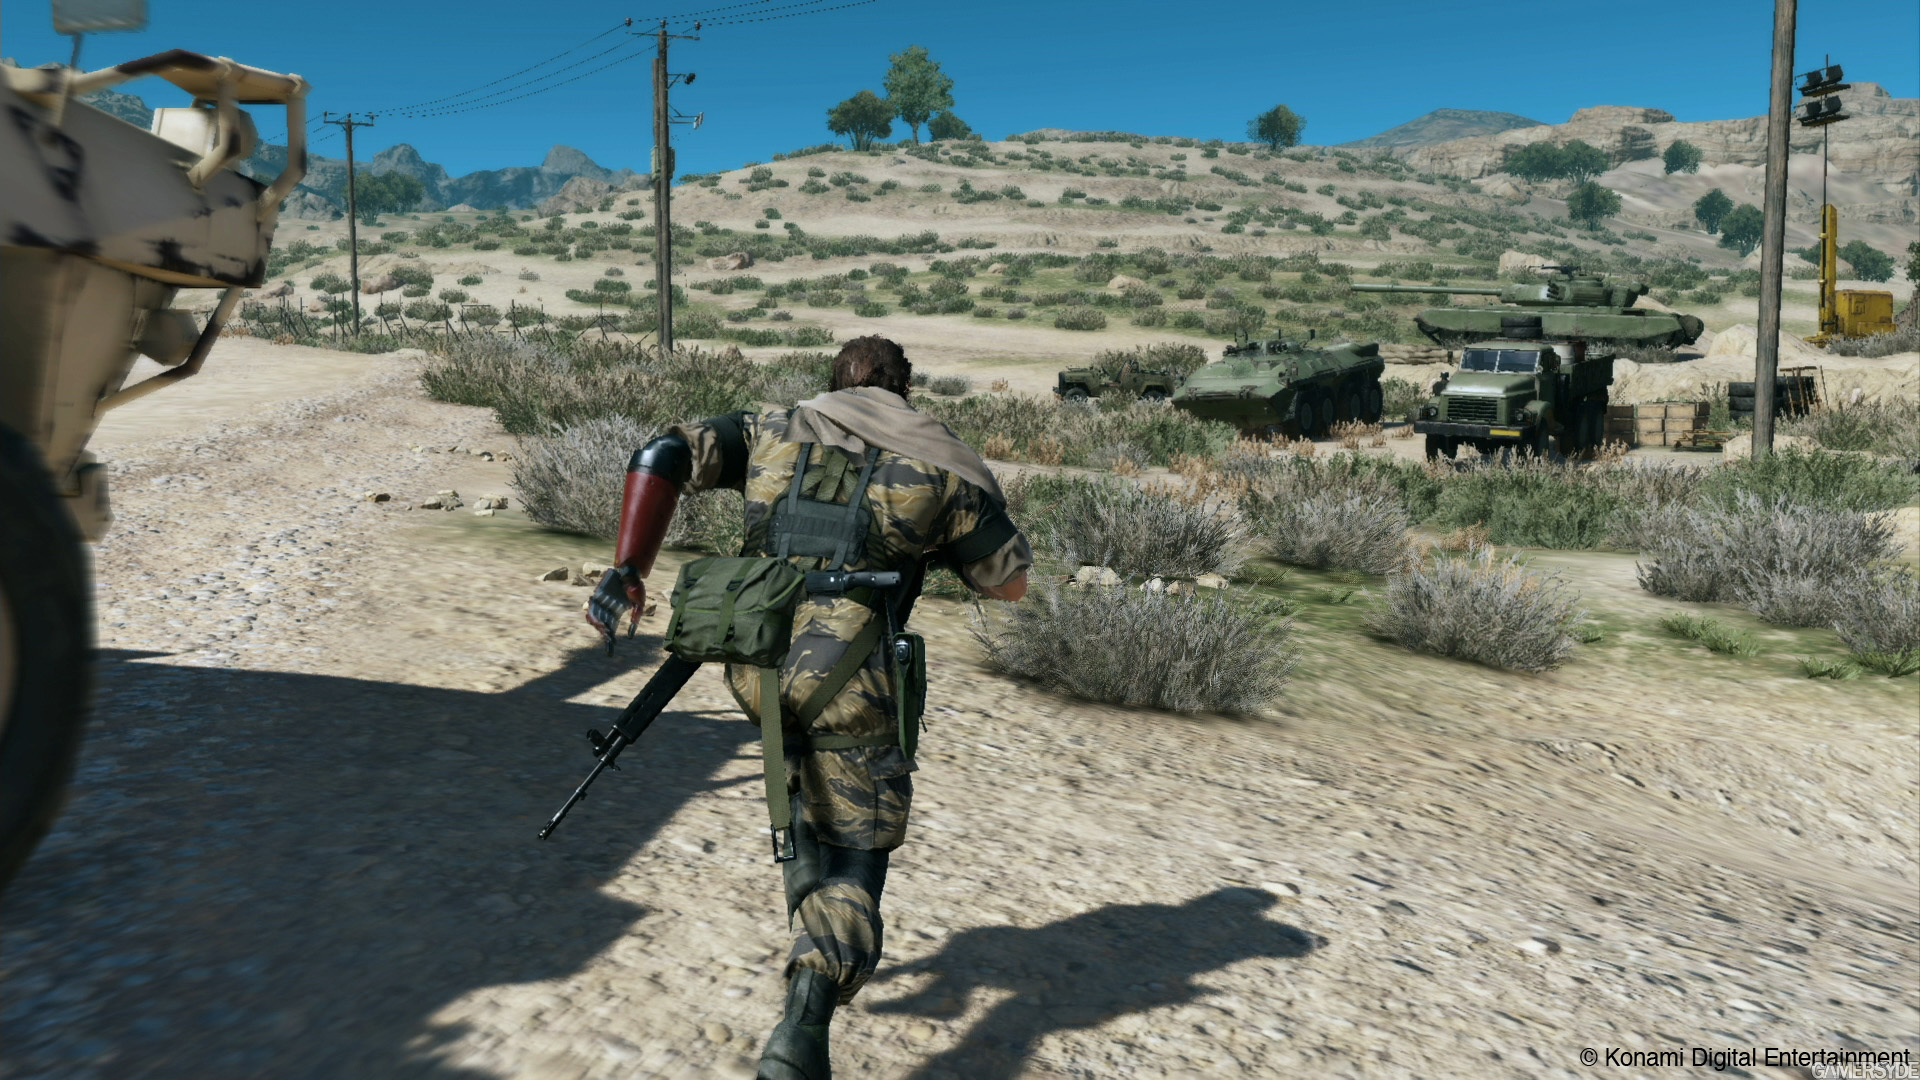 Screenshot for the game Metal Gear Solid V: The Phantom Pain [v 1.0.7.1] (2015) PC | RePack от R.G. Механики